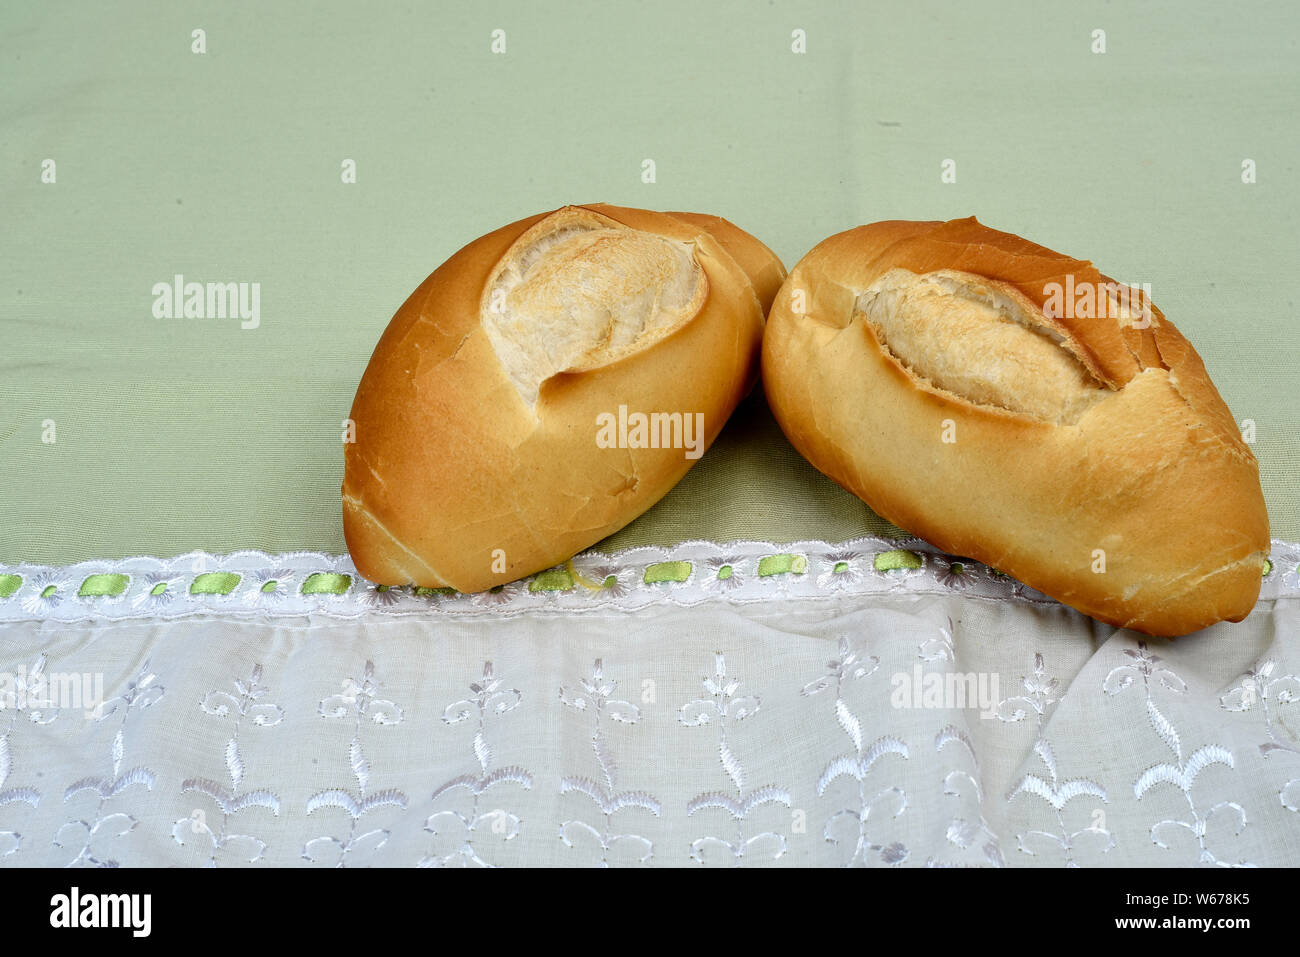 french bread roasted on the table Stock Photo